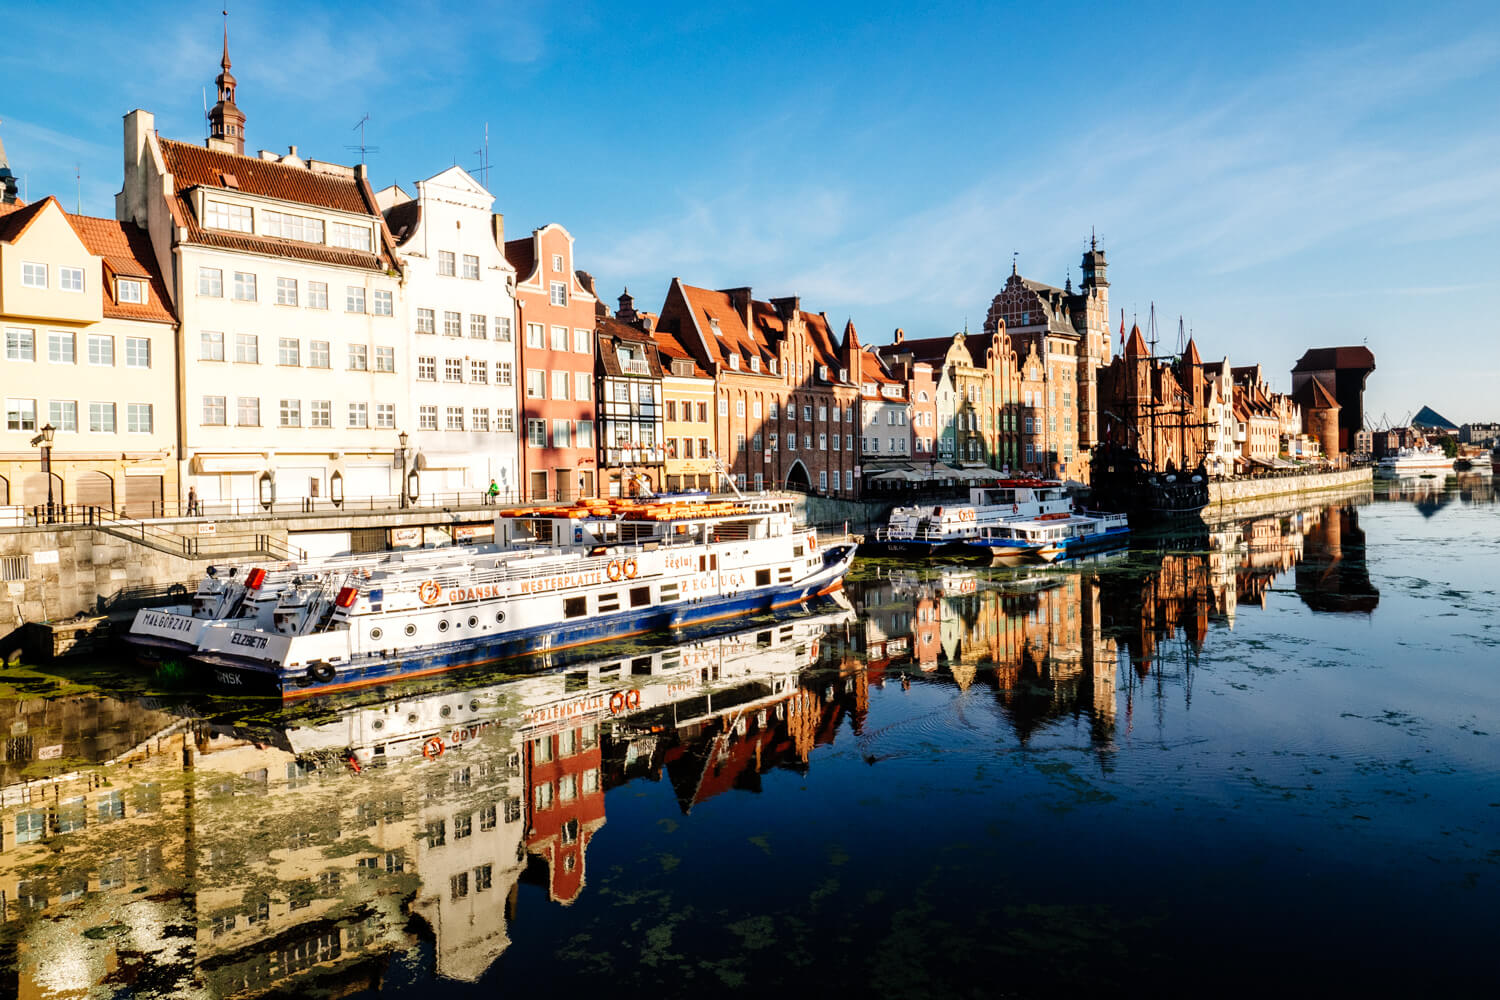 Gdansk, Poland. The riverfront area with gable rooftops and the medieval crane.